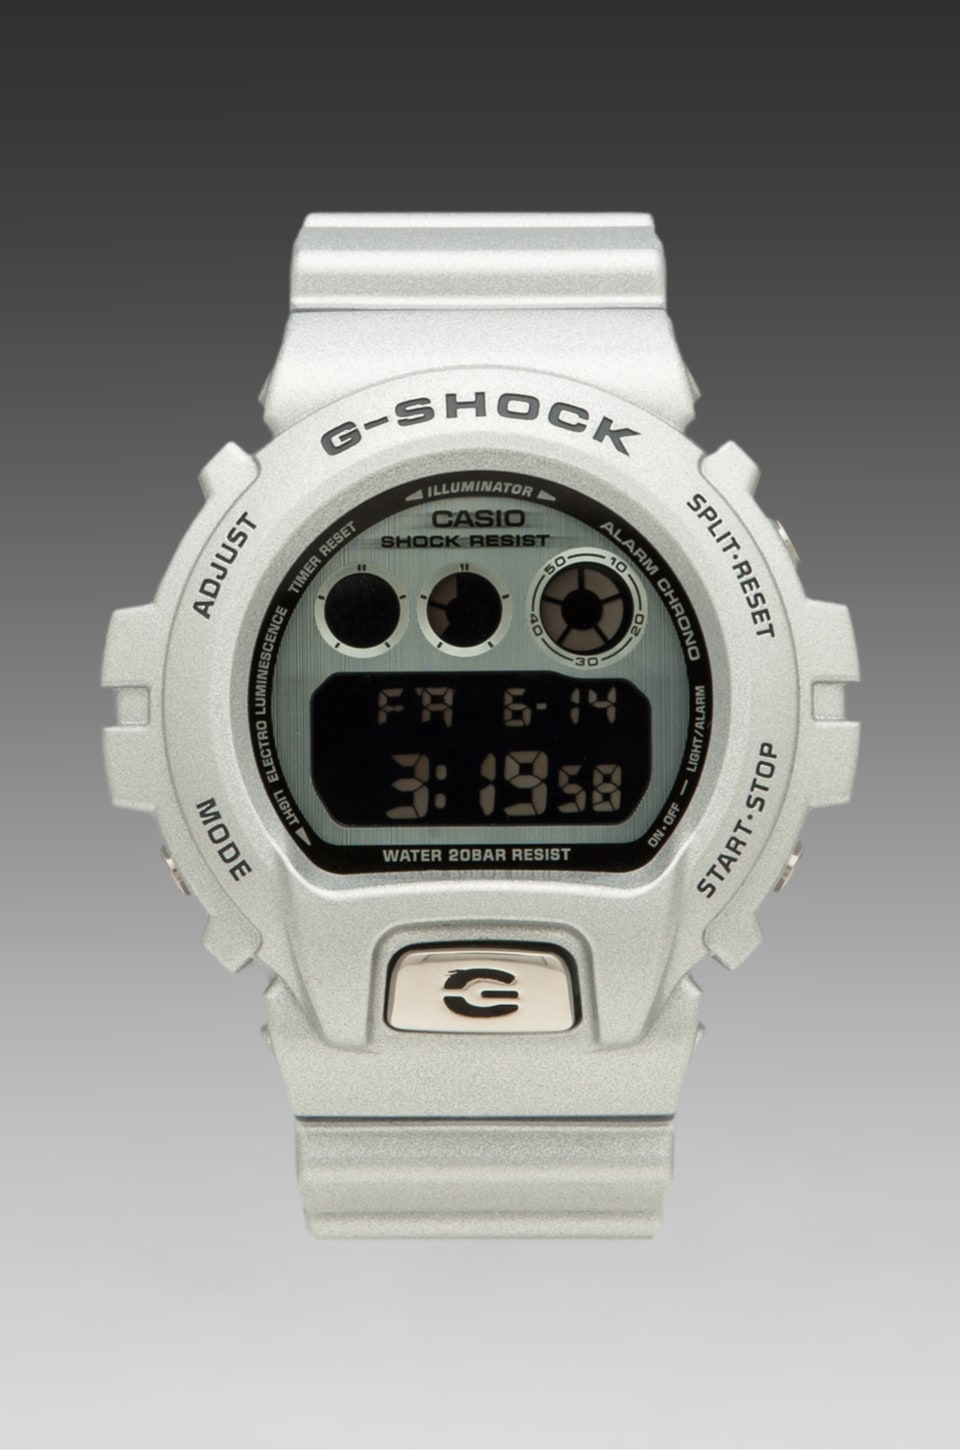 G-Shock 30th Anniversary Basel Limited Edition DW6900BS-8 in Silver Grey